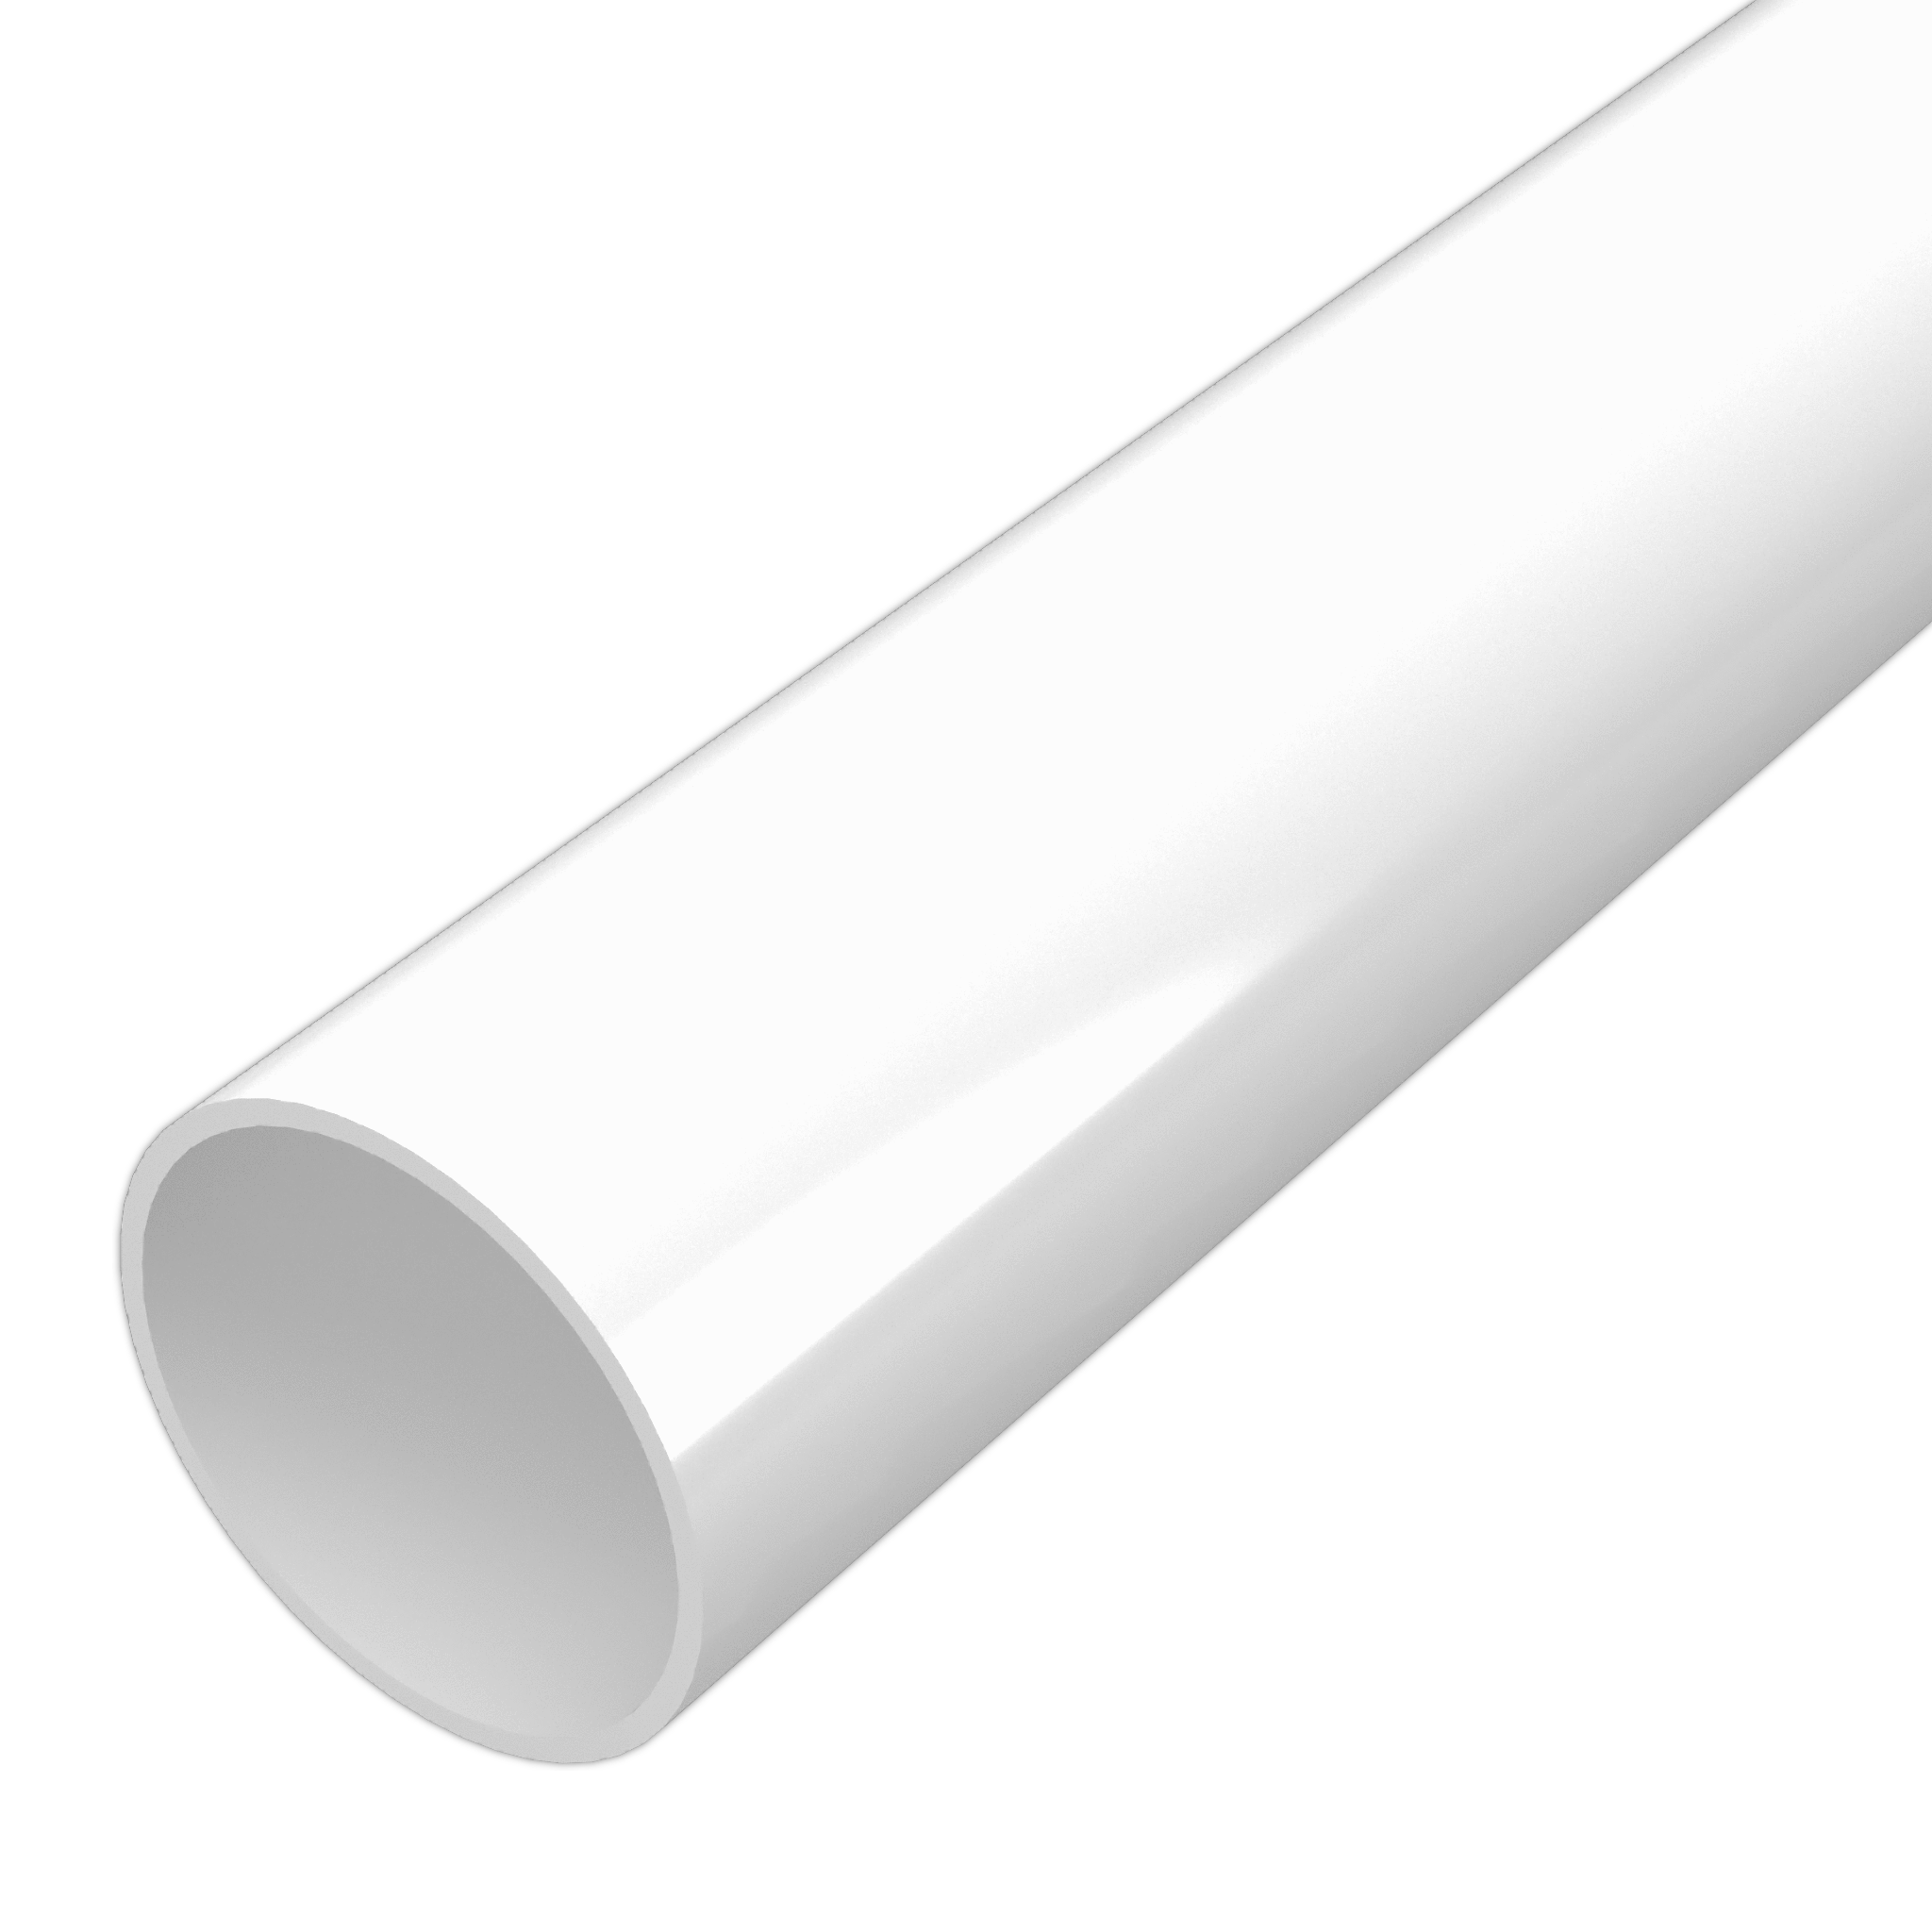 vector pipes pvc pipe